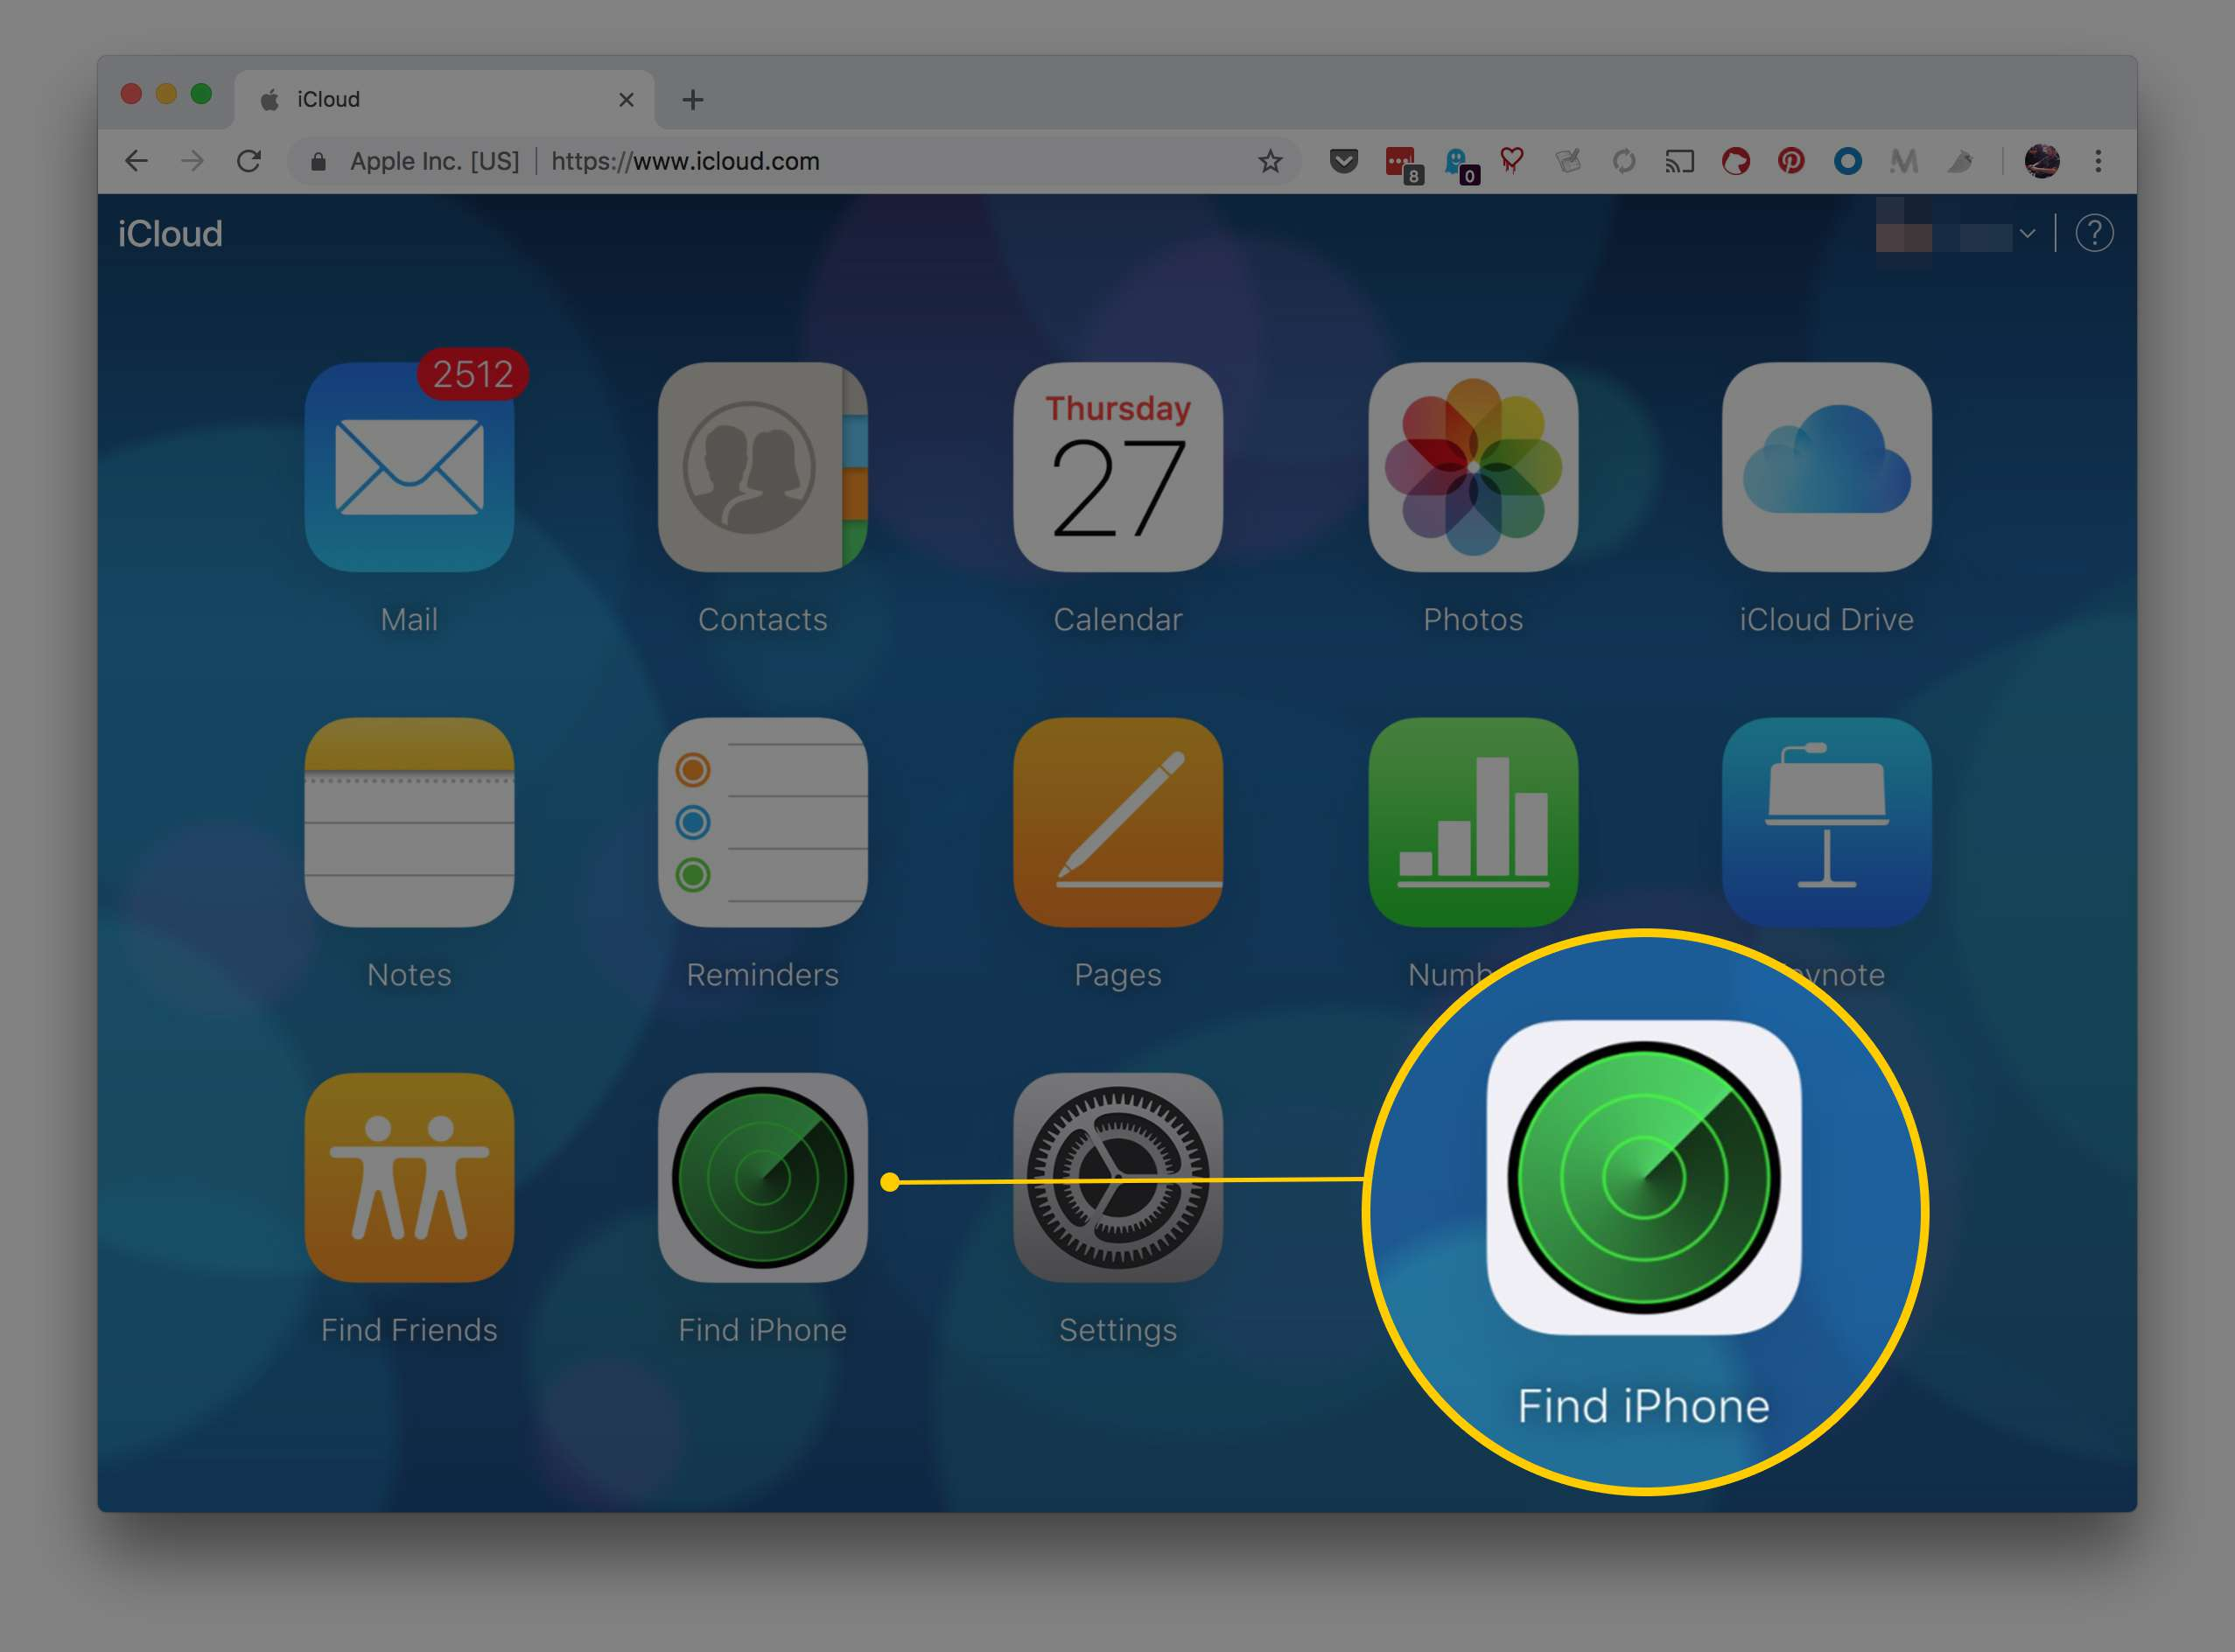 The iCloud.com webpage in Chrome highlighting Find iPhone icon